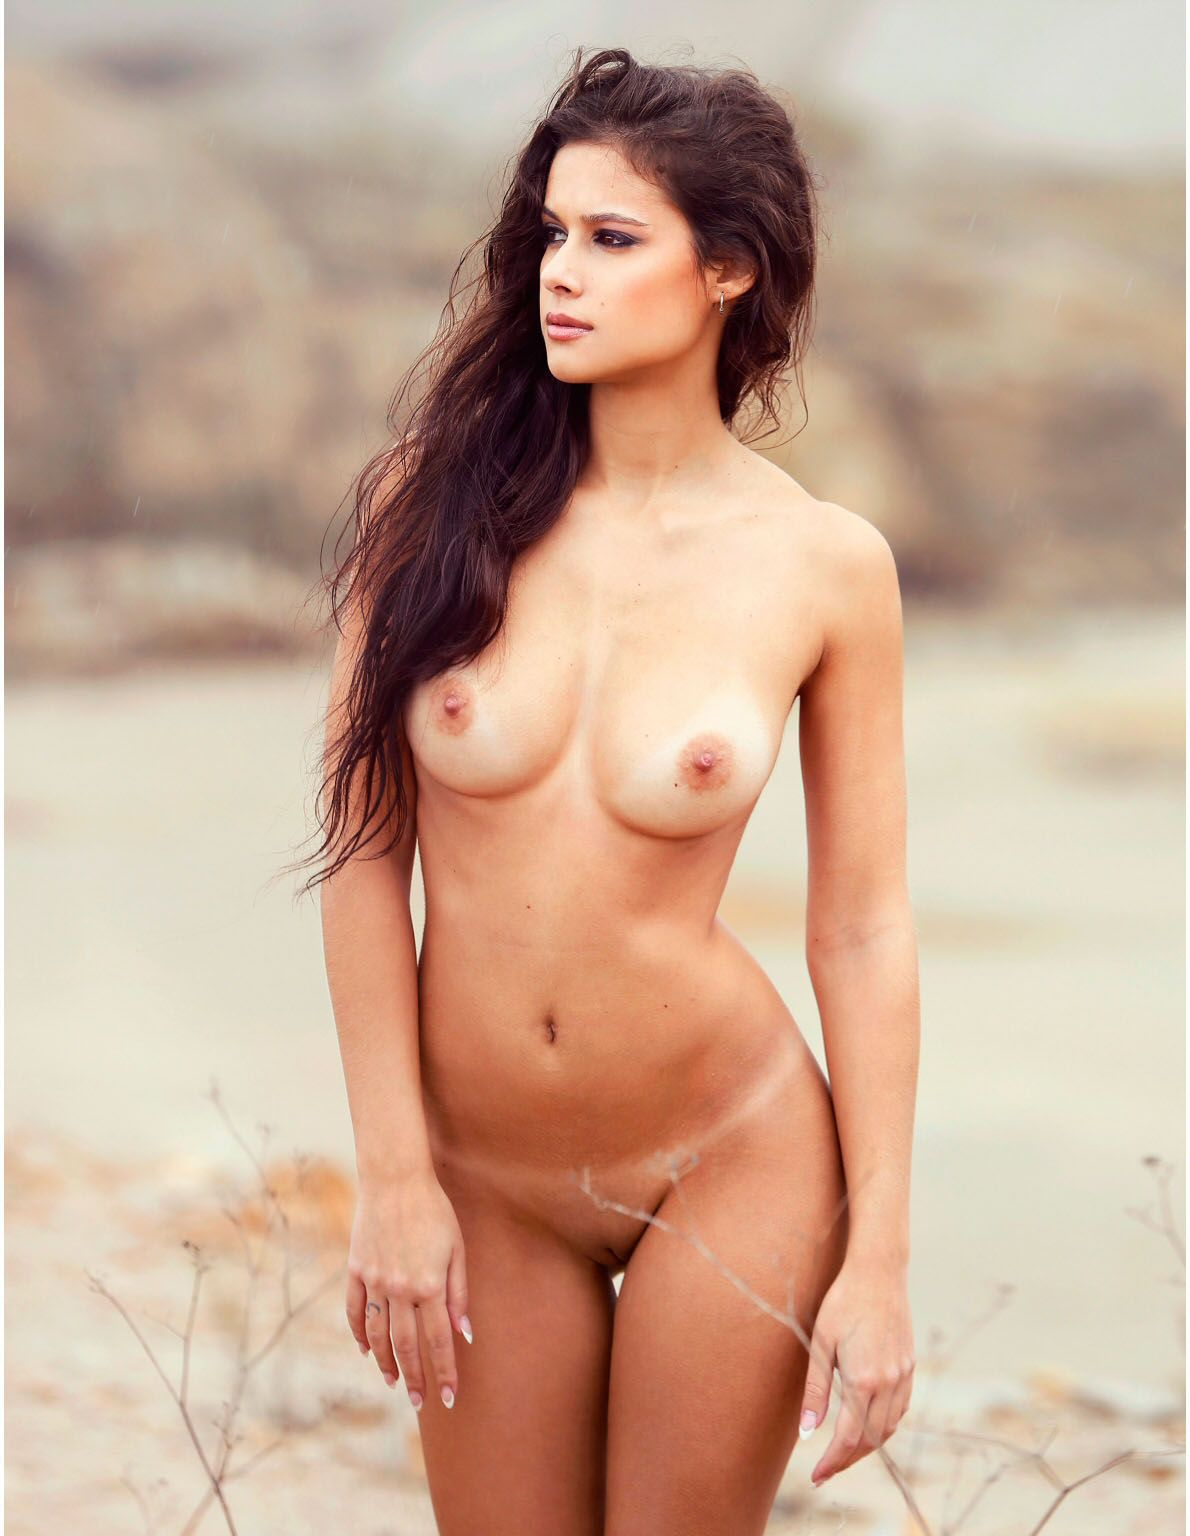 Naked women text pictures